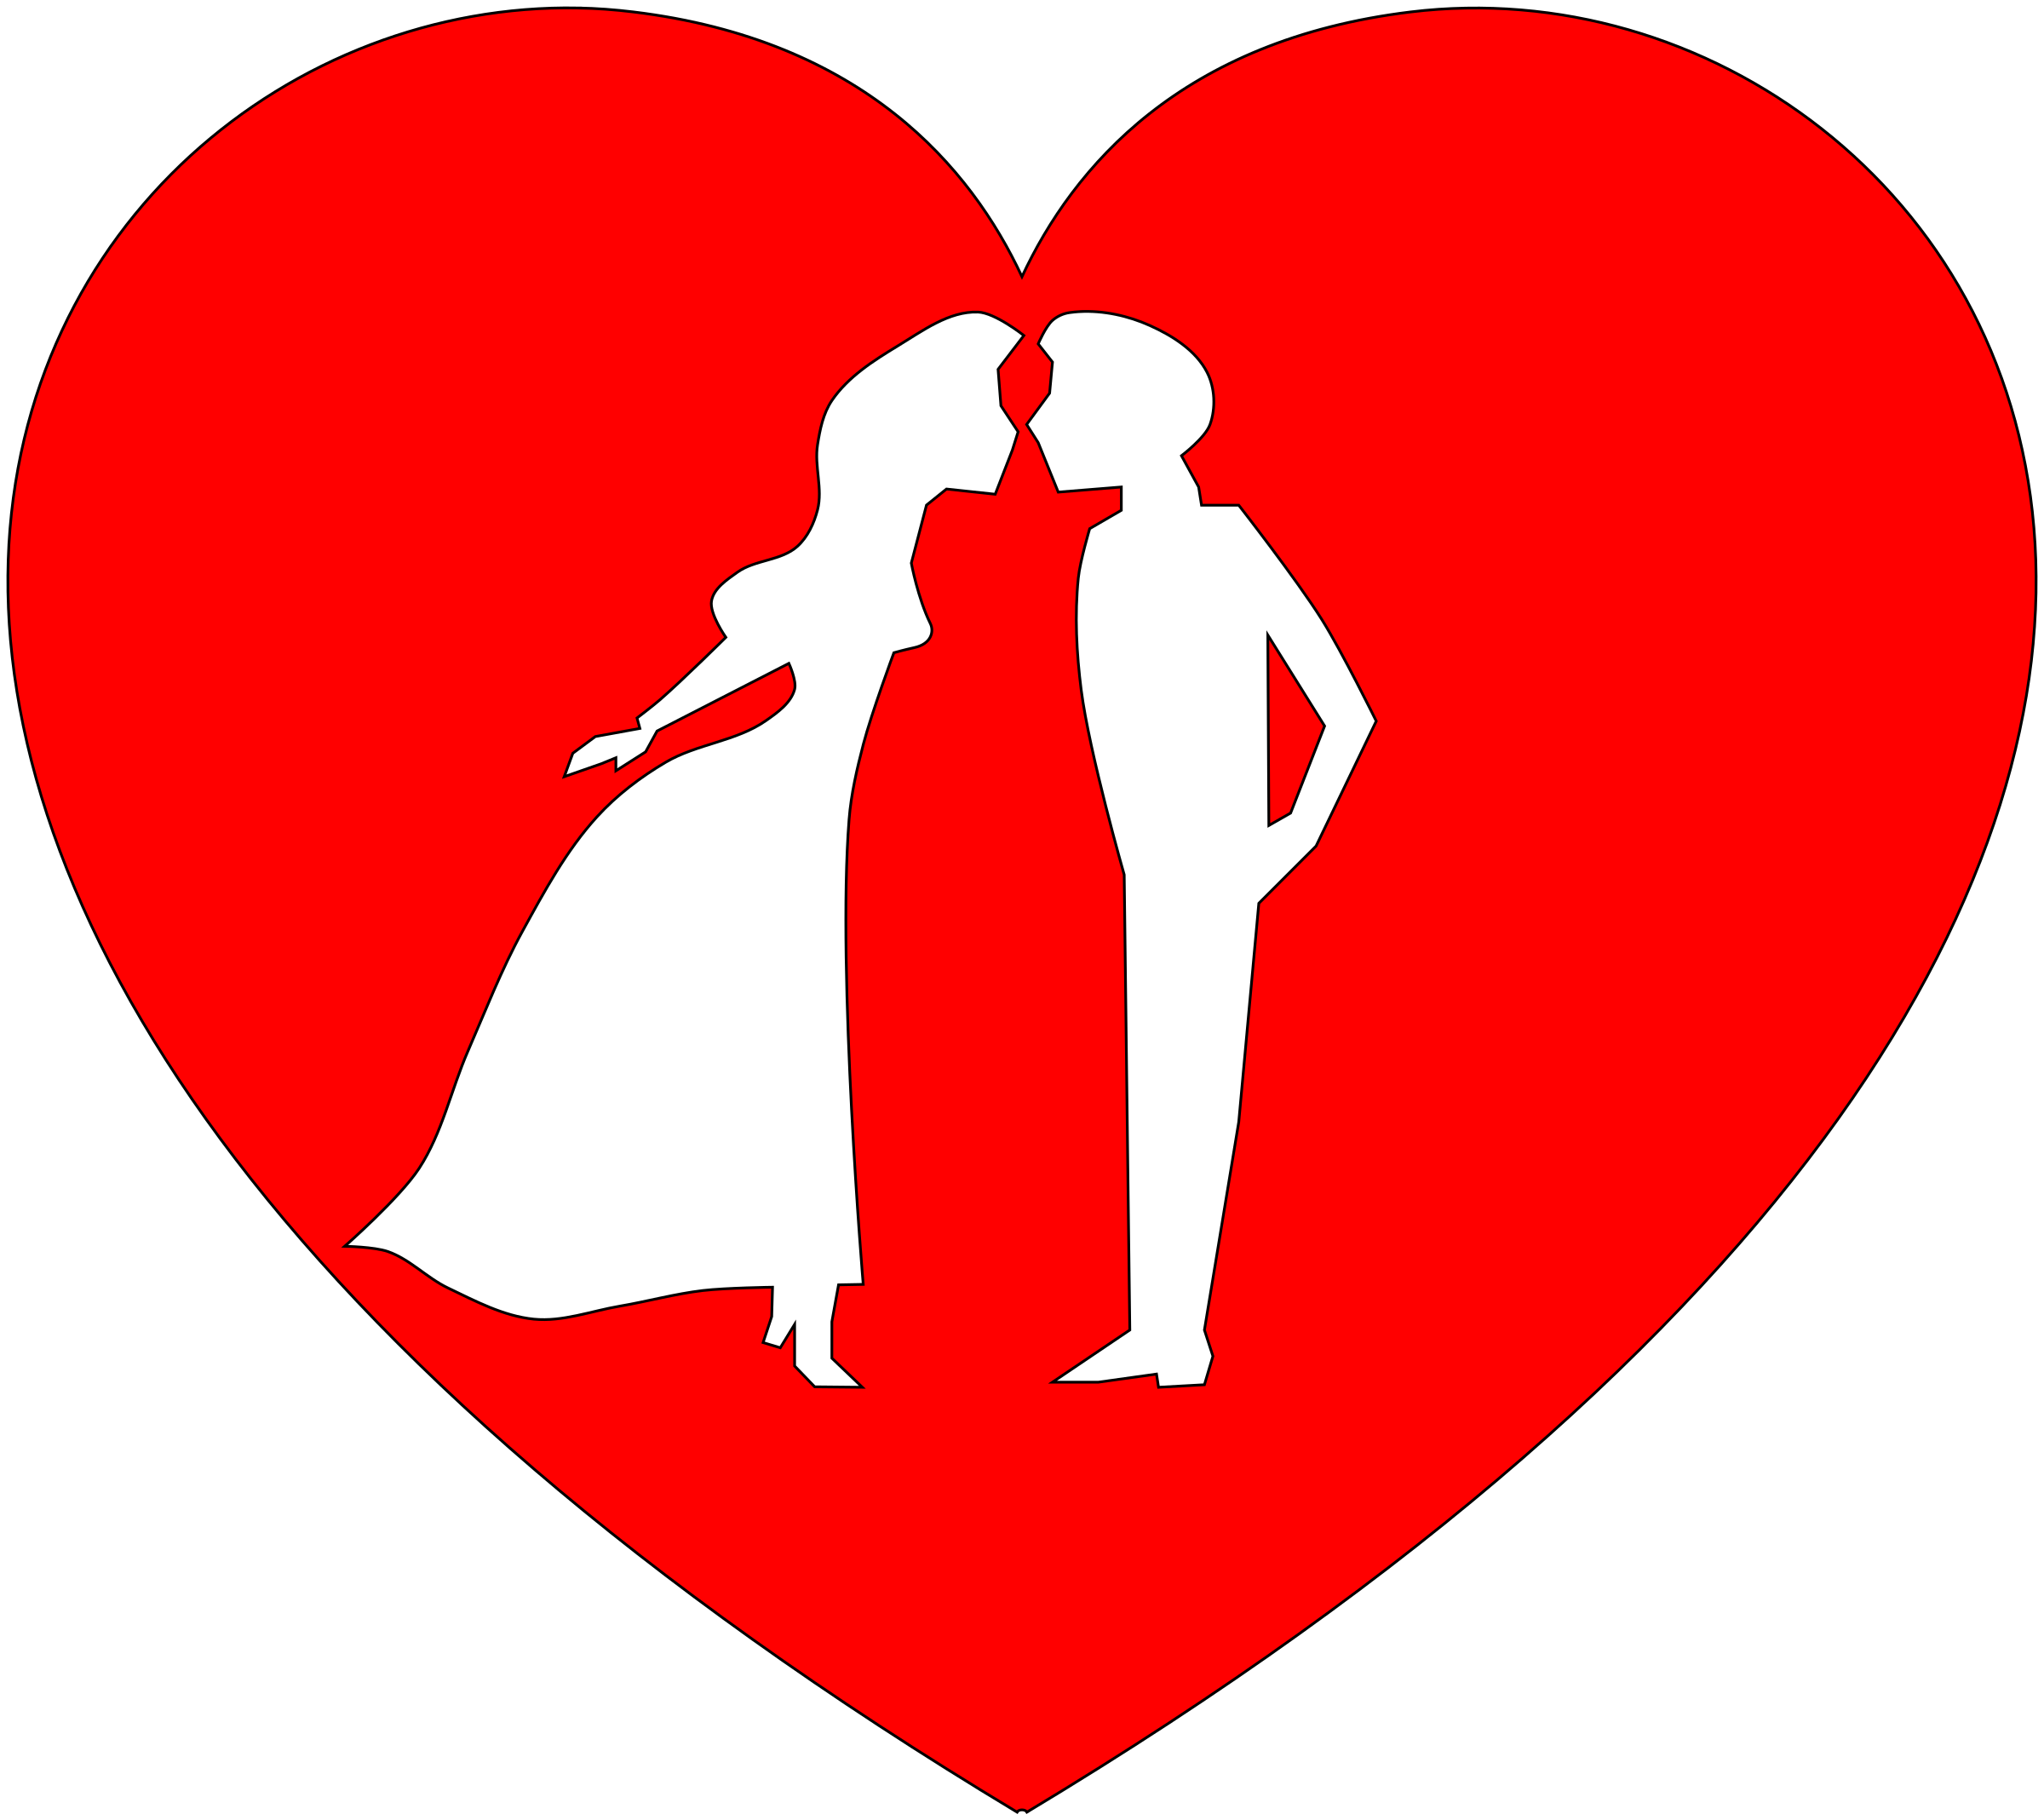 Couple clipart heart. Free photo pin pins